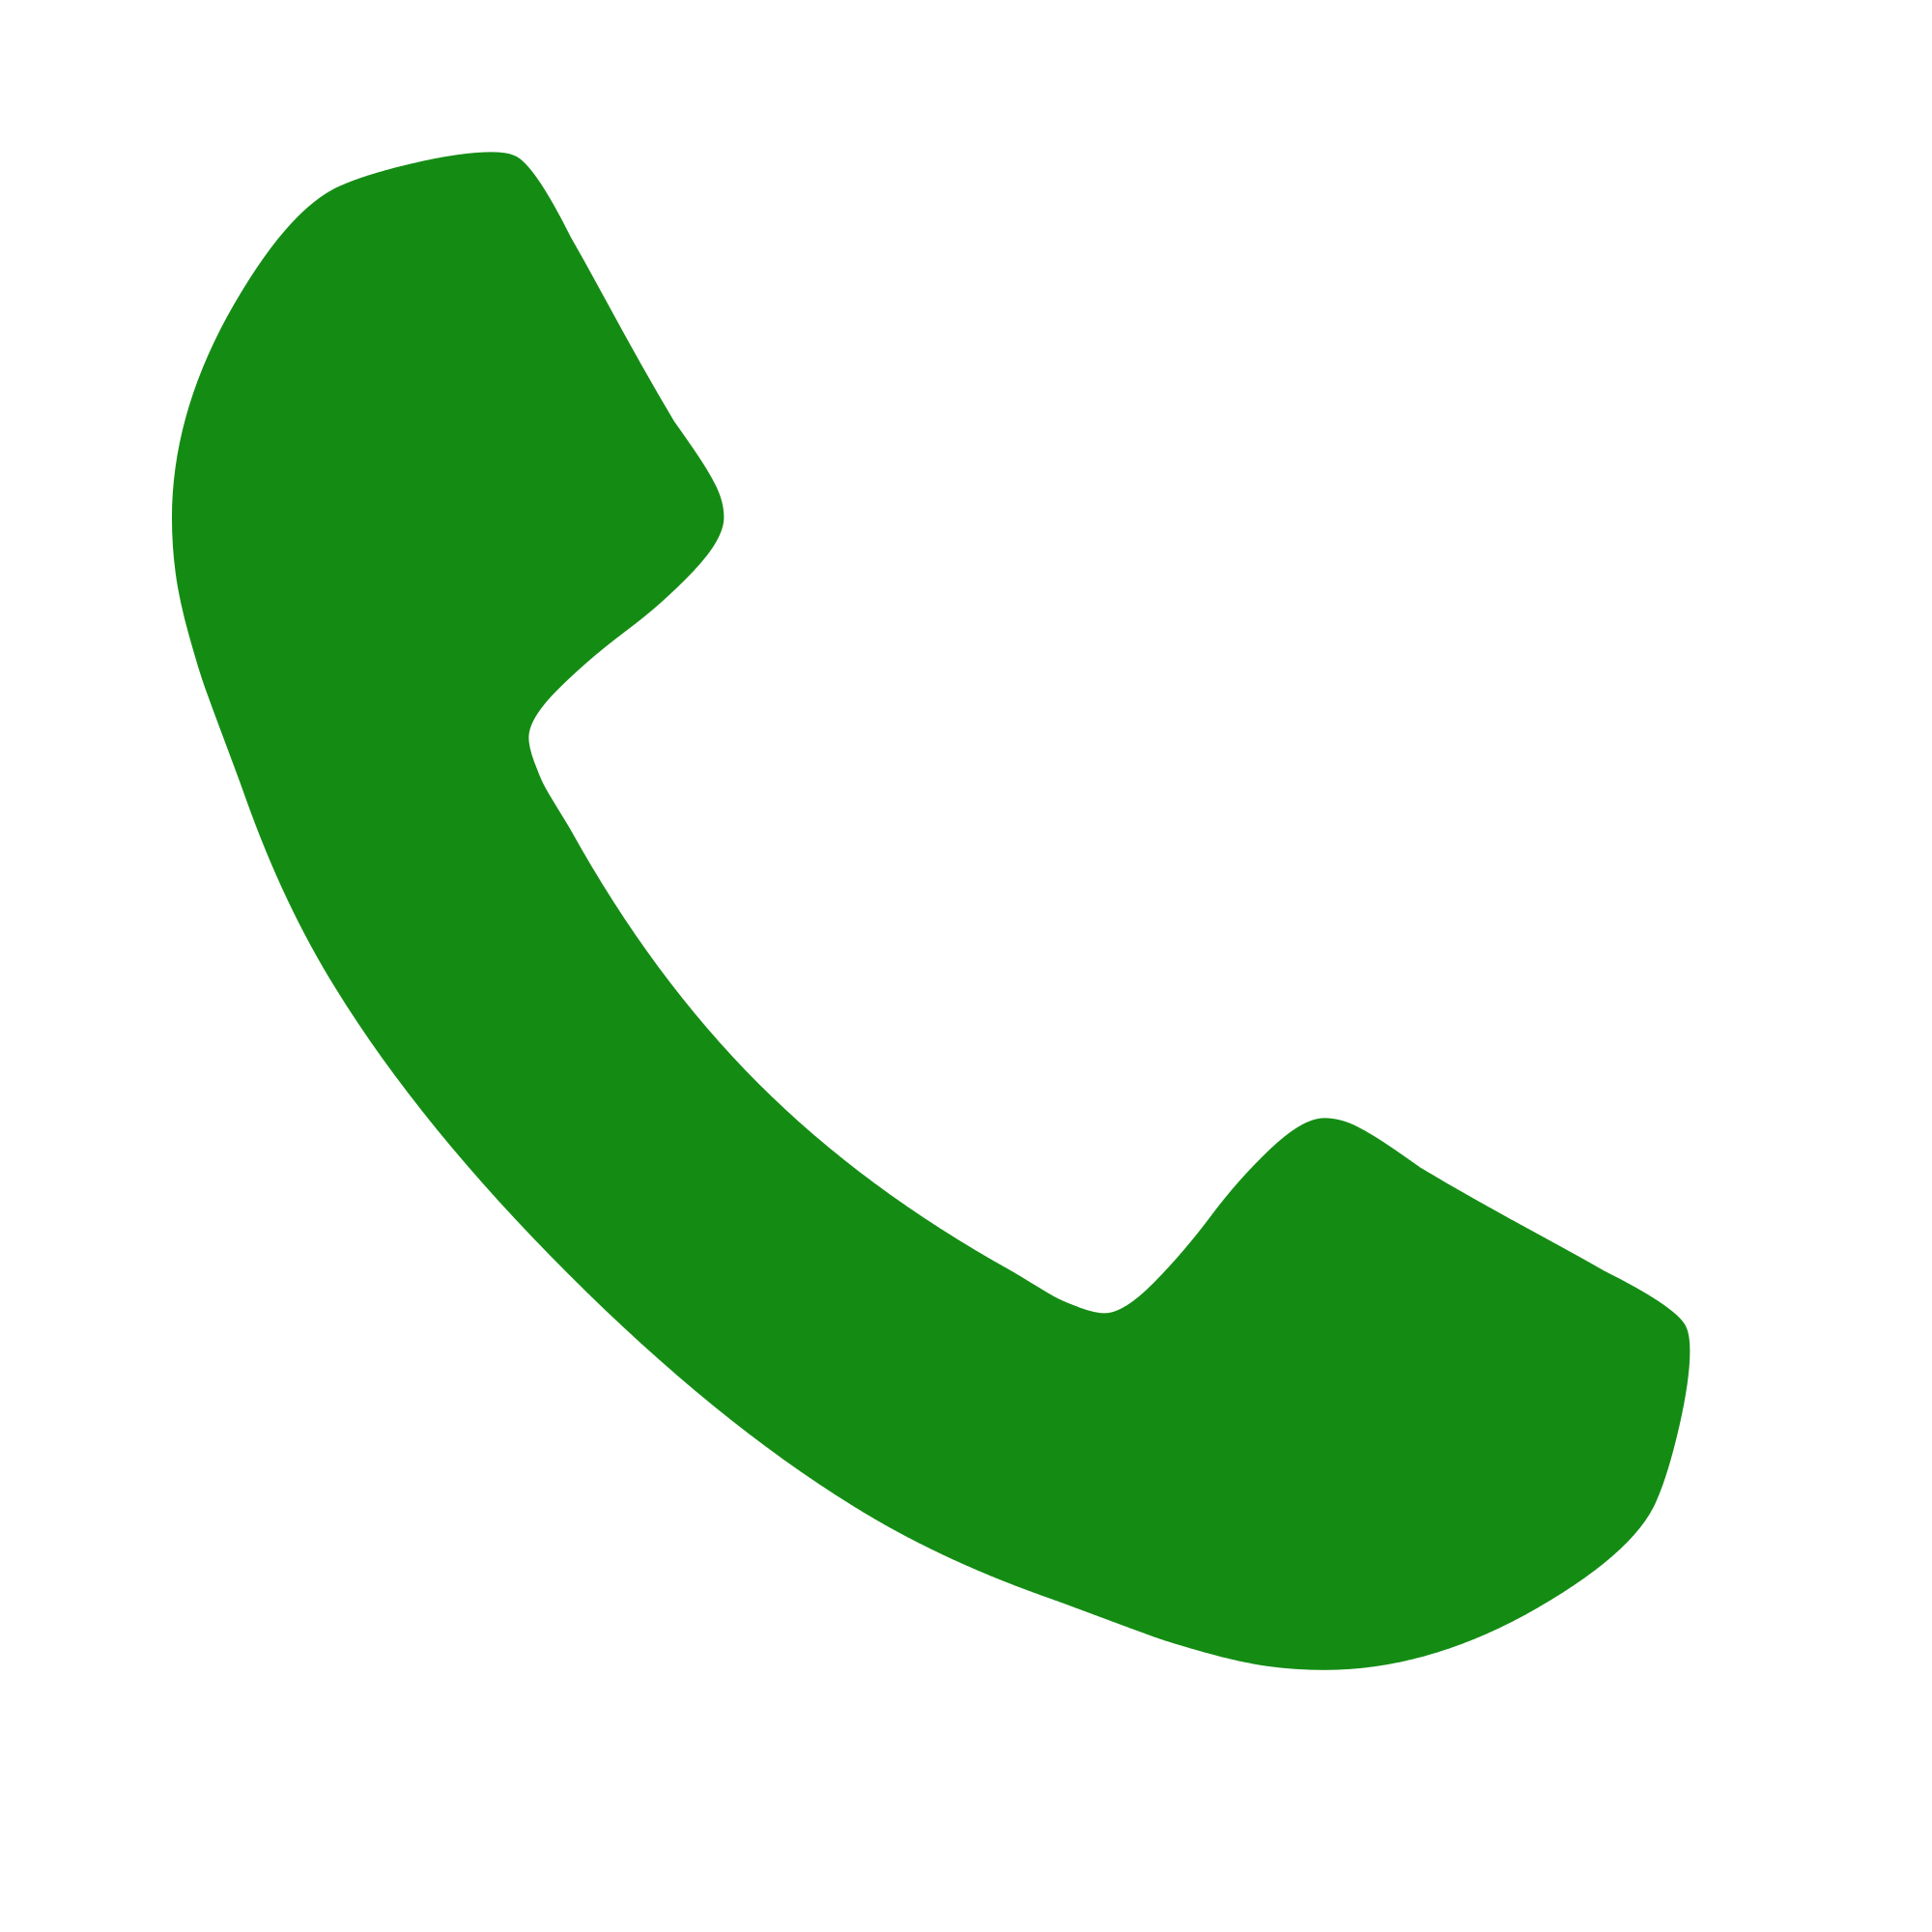 Telephone clipart green phone. File font awesome svg